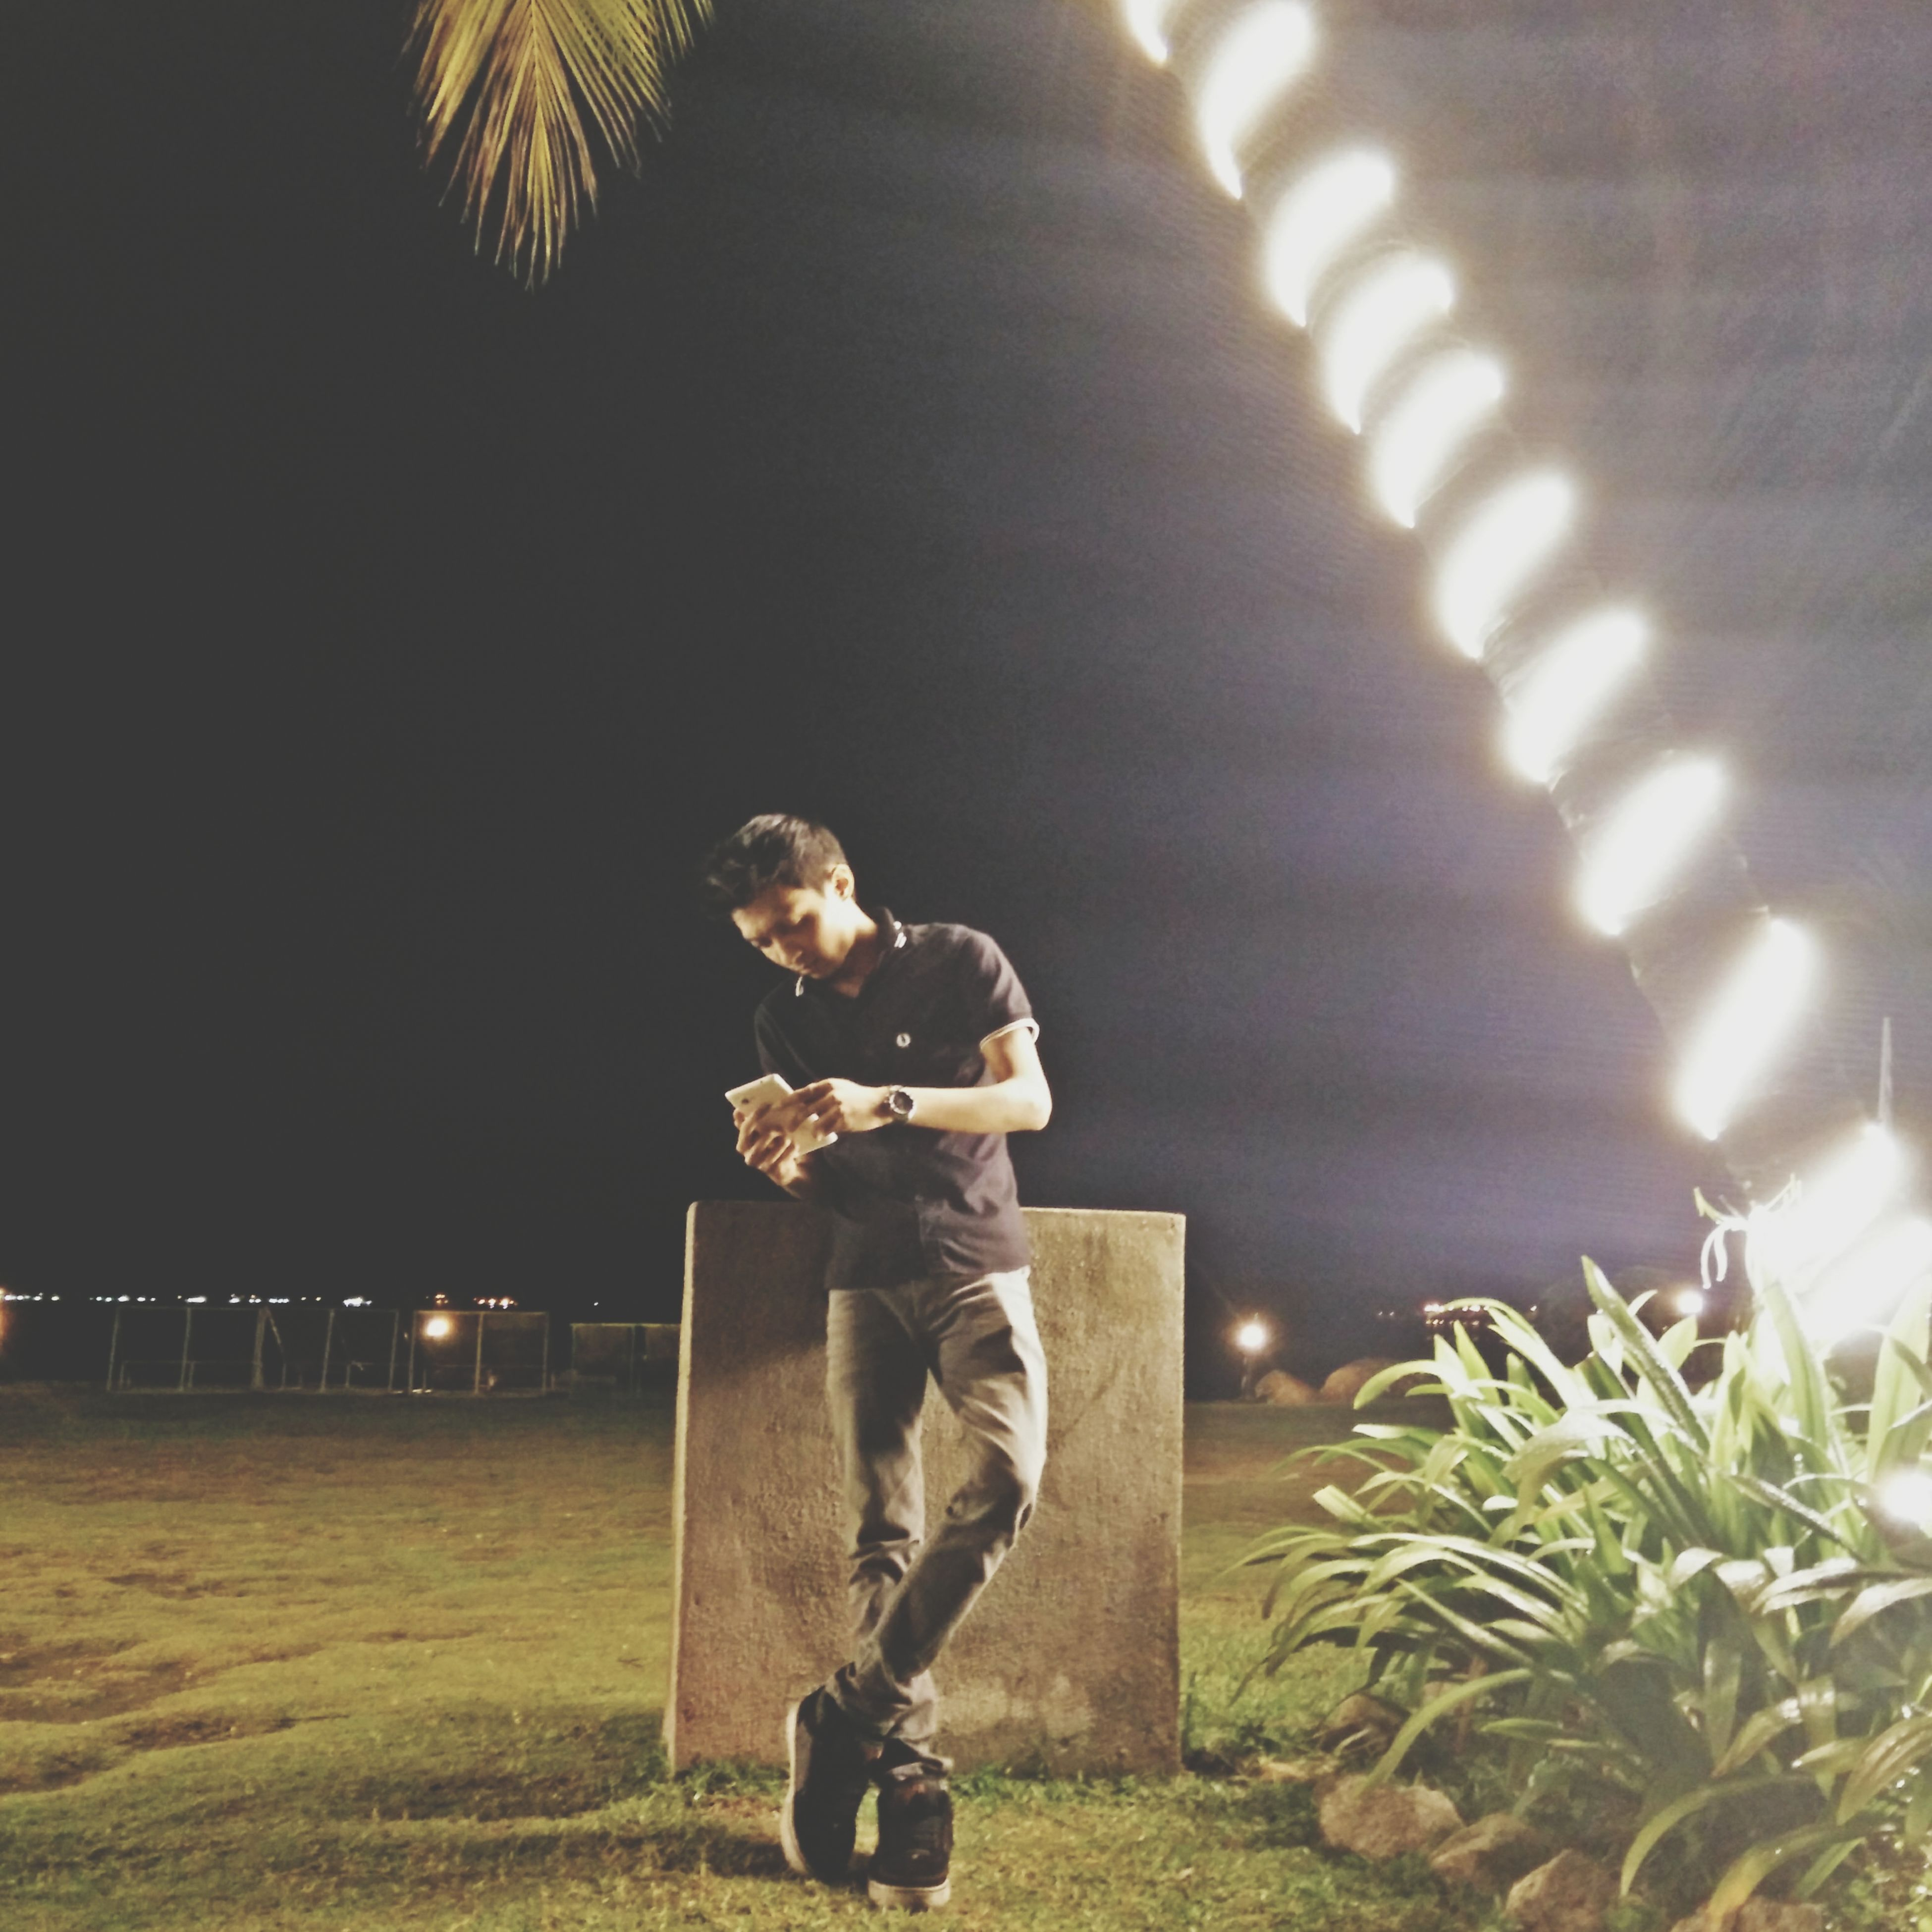 night, lifestyles, illuminated, leisure activity, full length, standing, men, casual clothing, rear view, arts culture and entertainment, holding, lighting equipment, person, boys, three quarter length, playing, childhood, outdoors